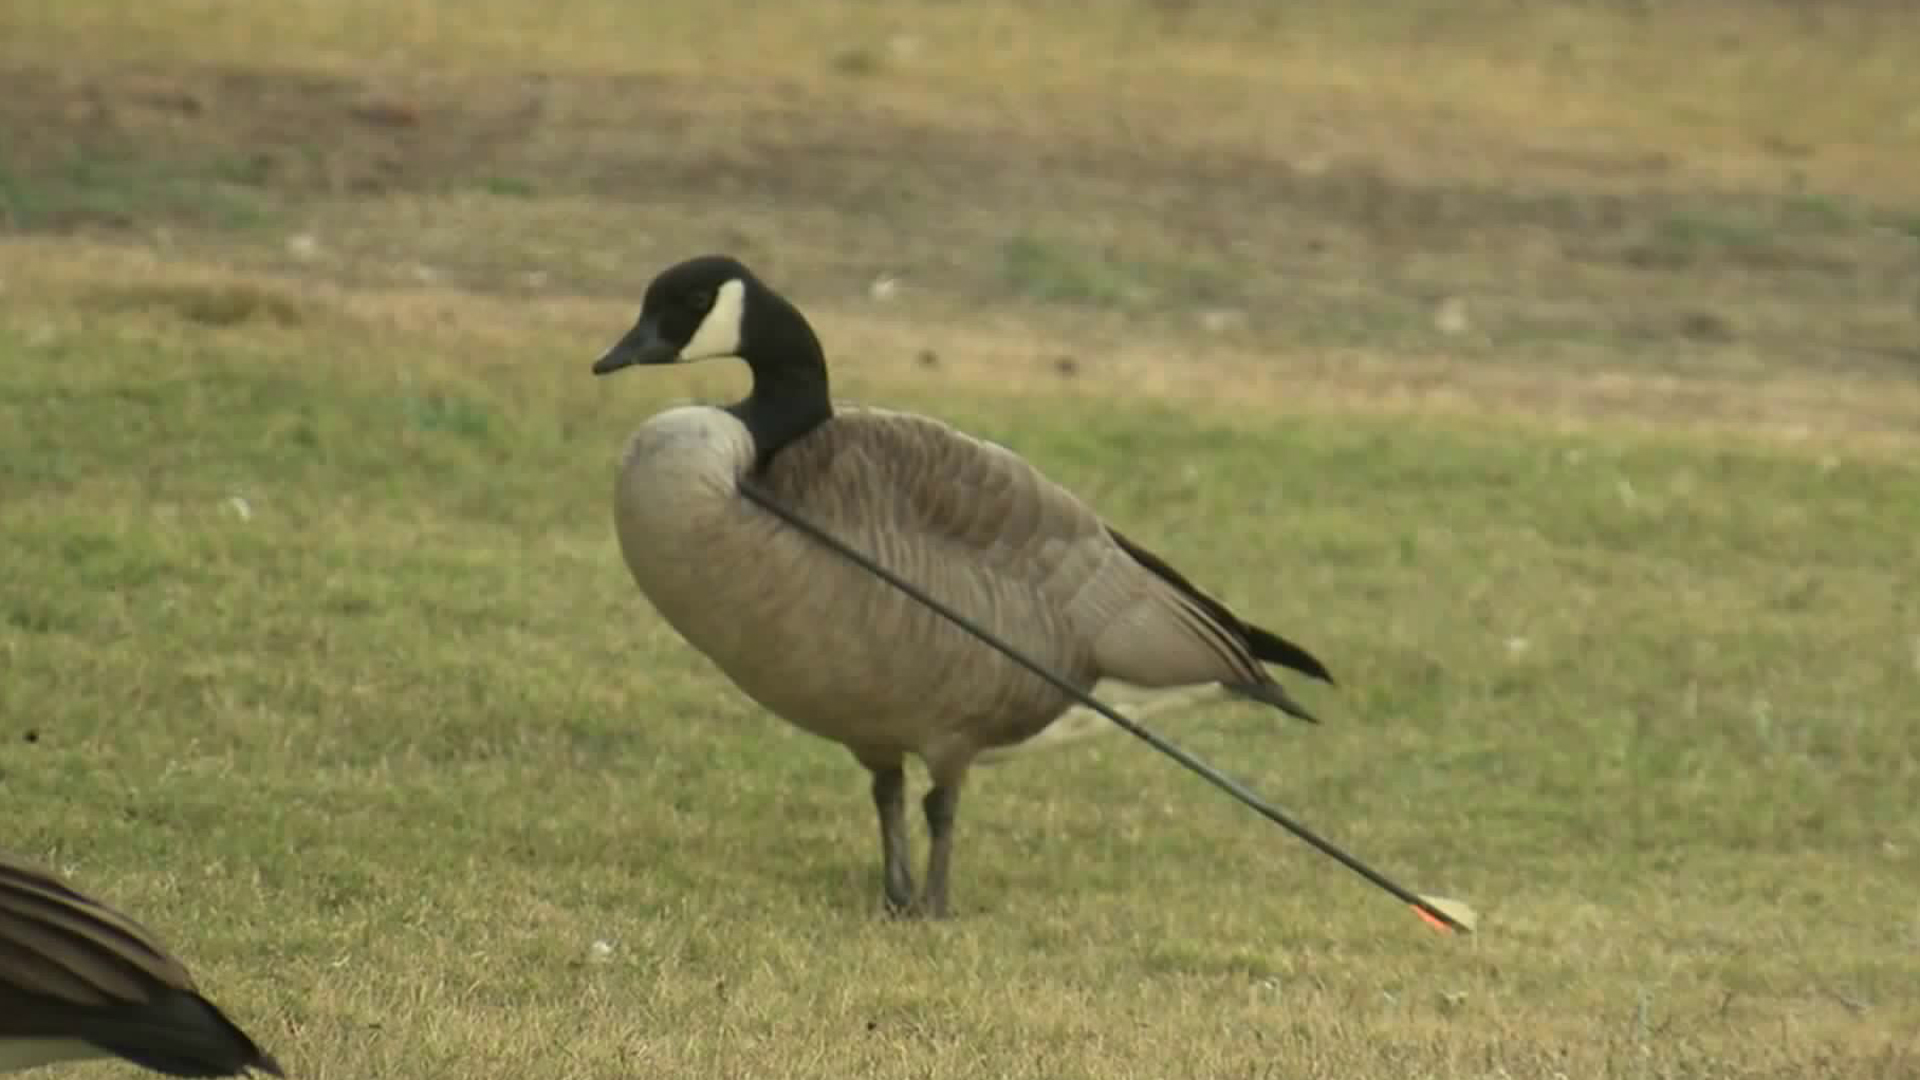 Rescuers tried to nab the goose in order to get the arrow out of its neck on Dec. 19, 2017. Those efforts were unsuccessful, but a day later, the arrow fell from the bird's neck without intervention. (Credit: KTLA)